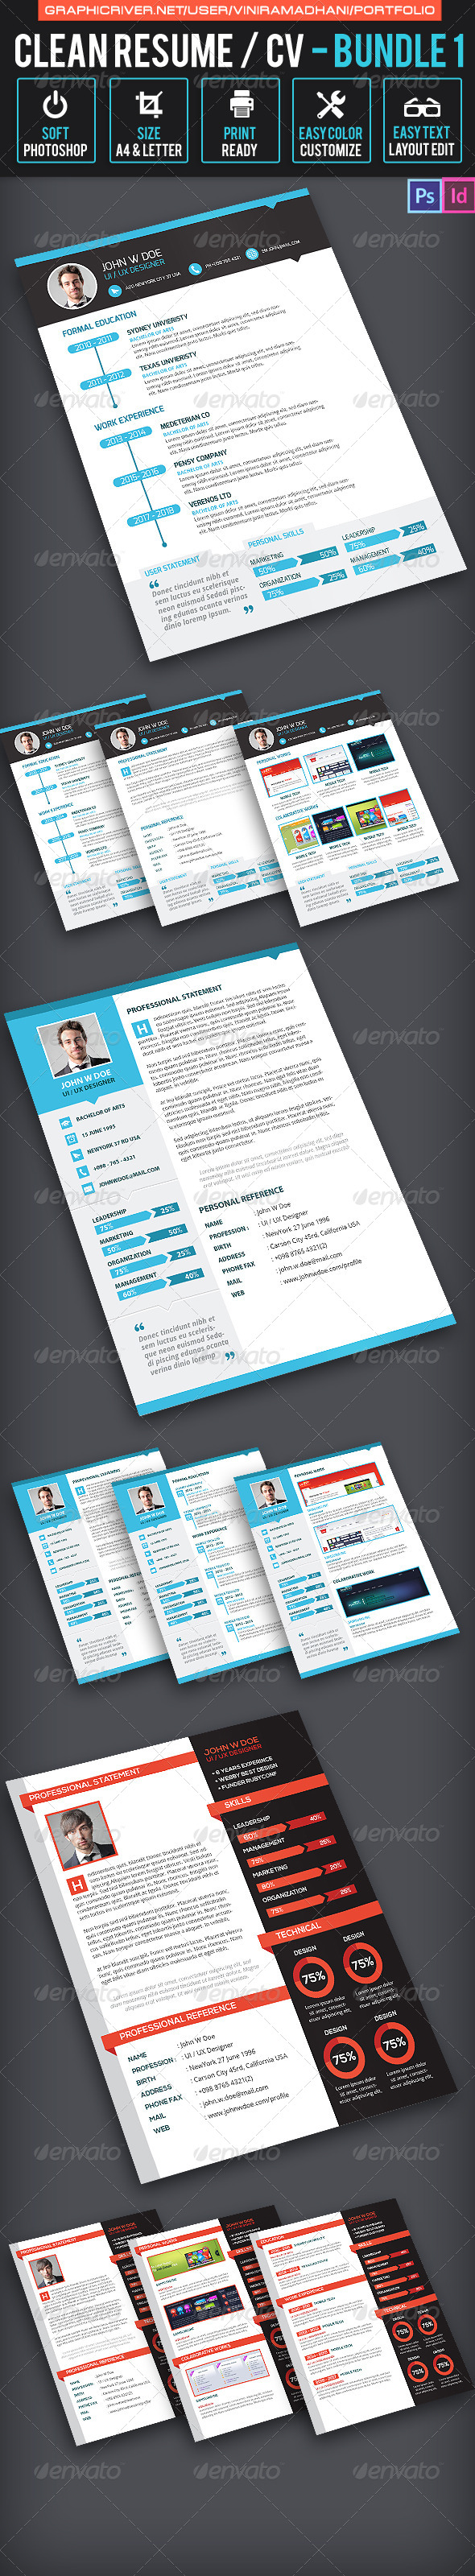 Simple Resume CV Bundle - Resumes Stationery